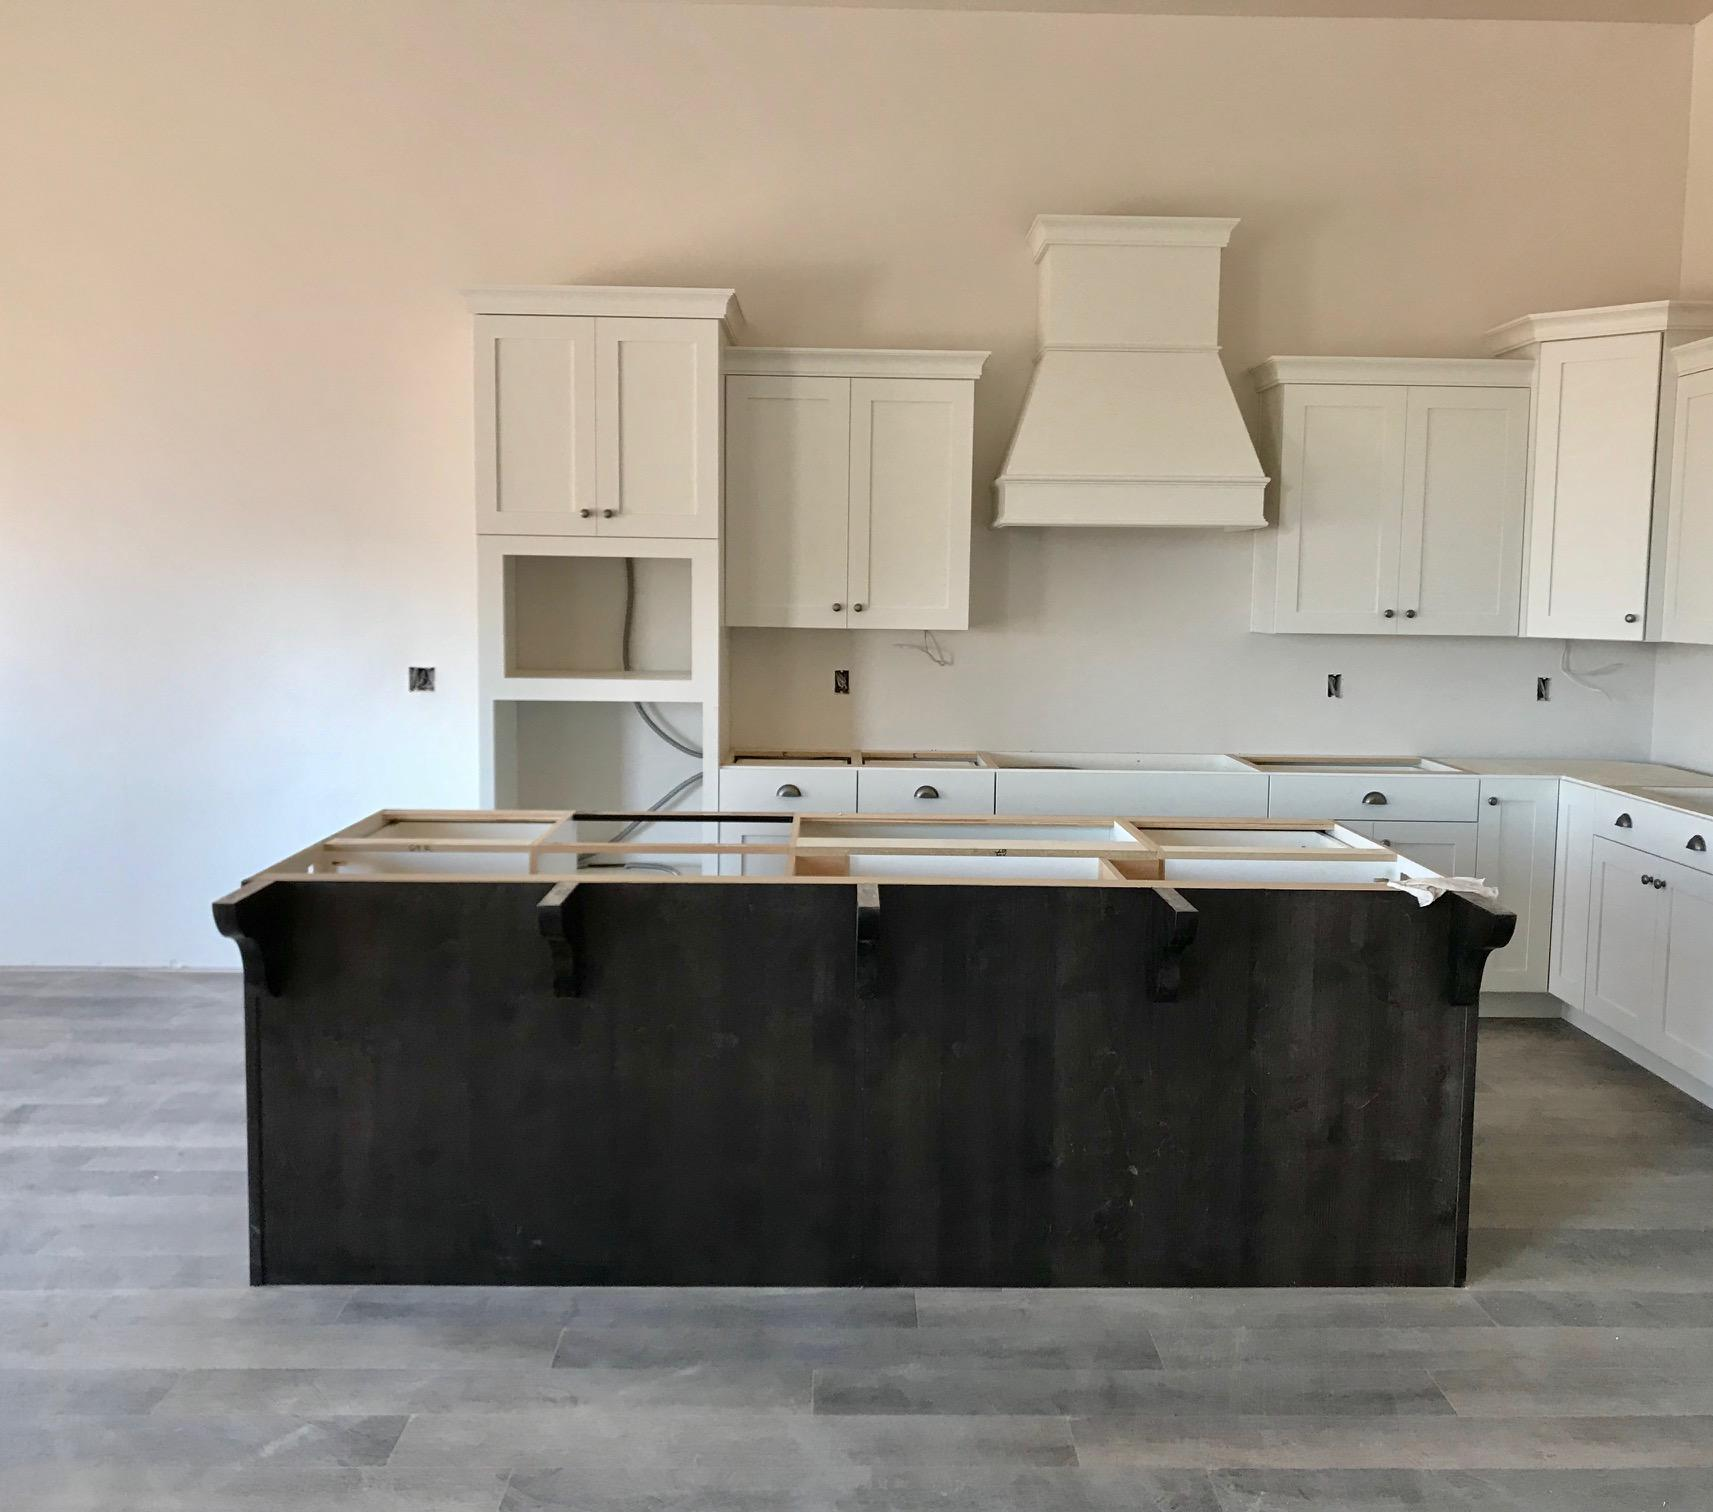 S&S Homes New Construction at Shooting Star! Check out this 6br 4.5ba home on .27 acre lot with no homes behind and city park across the street. Front and back yard landscaping included along with all the finishes you\